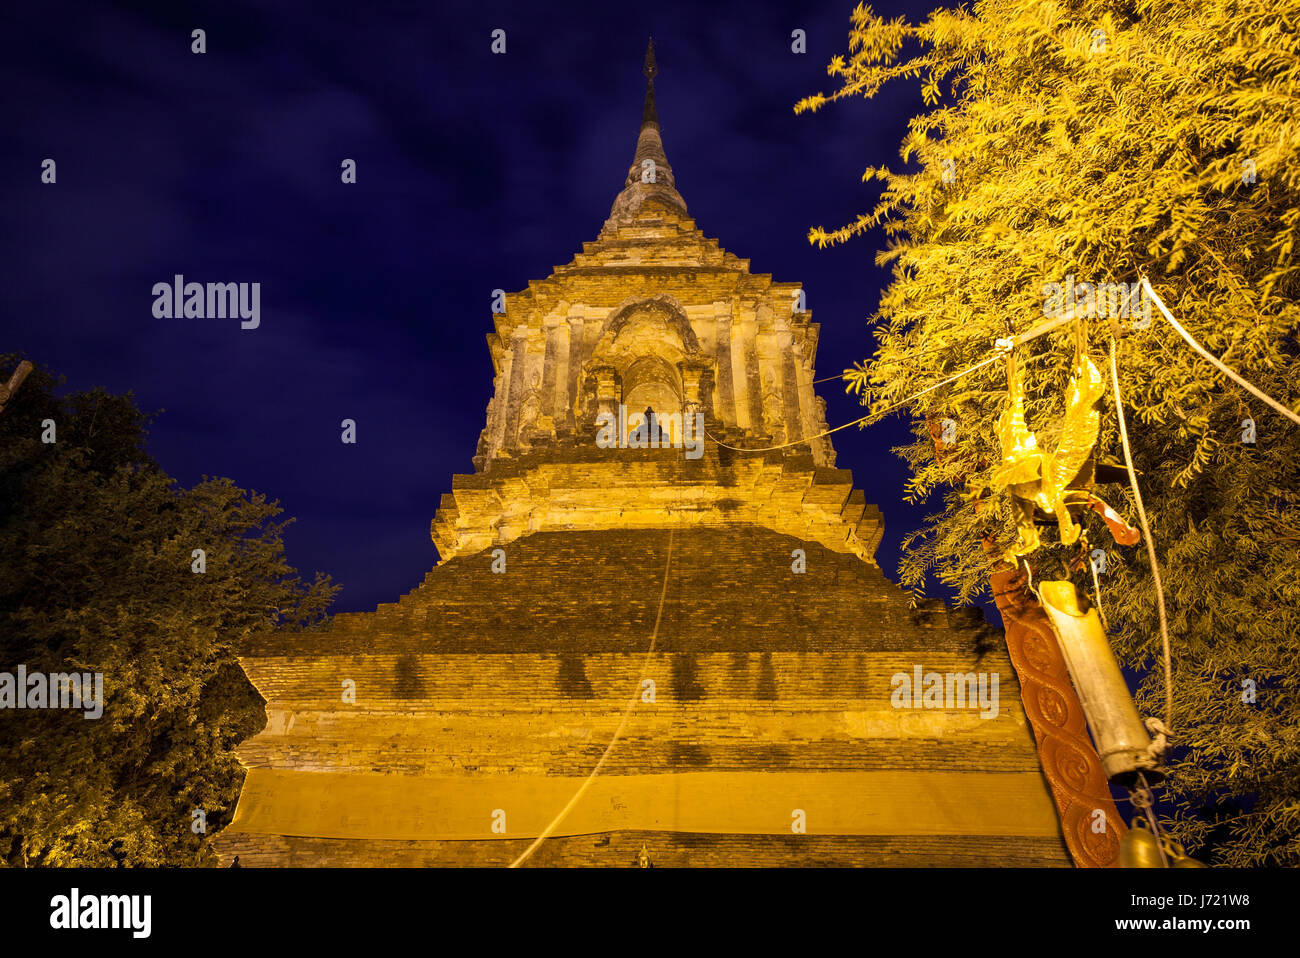 Large chedi at the Wat Lok Molee, one of the oldest temples in Chiang Mai, Thailand - Stock Image